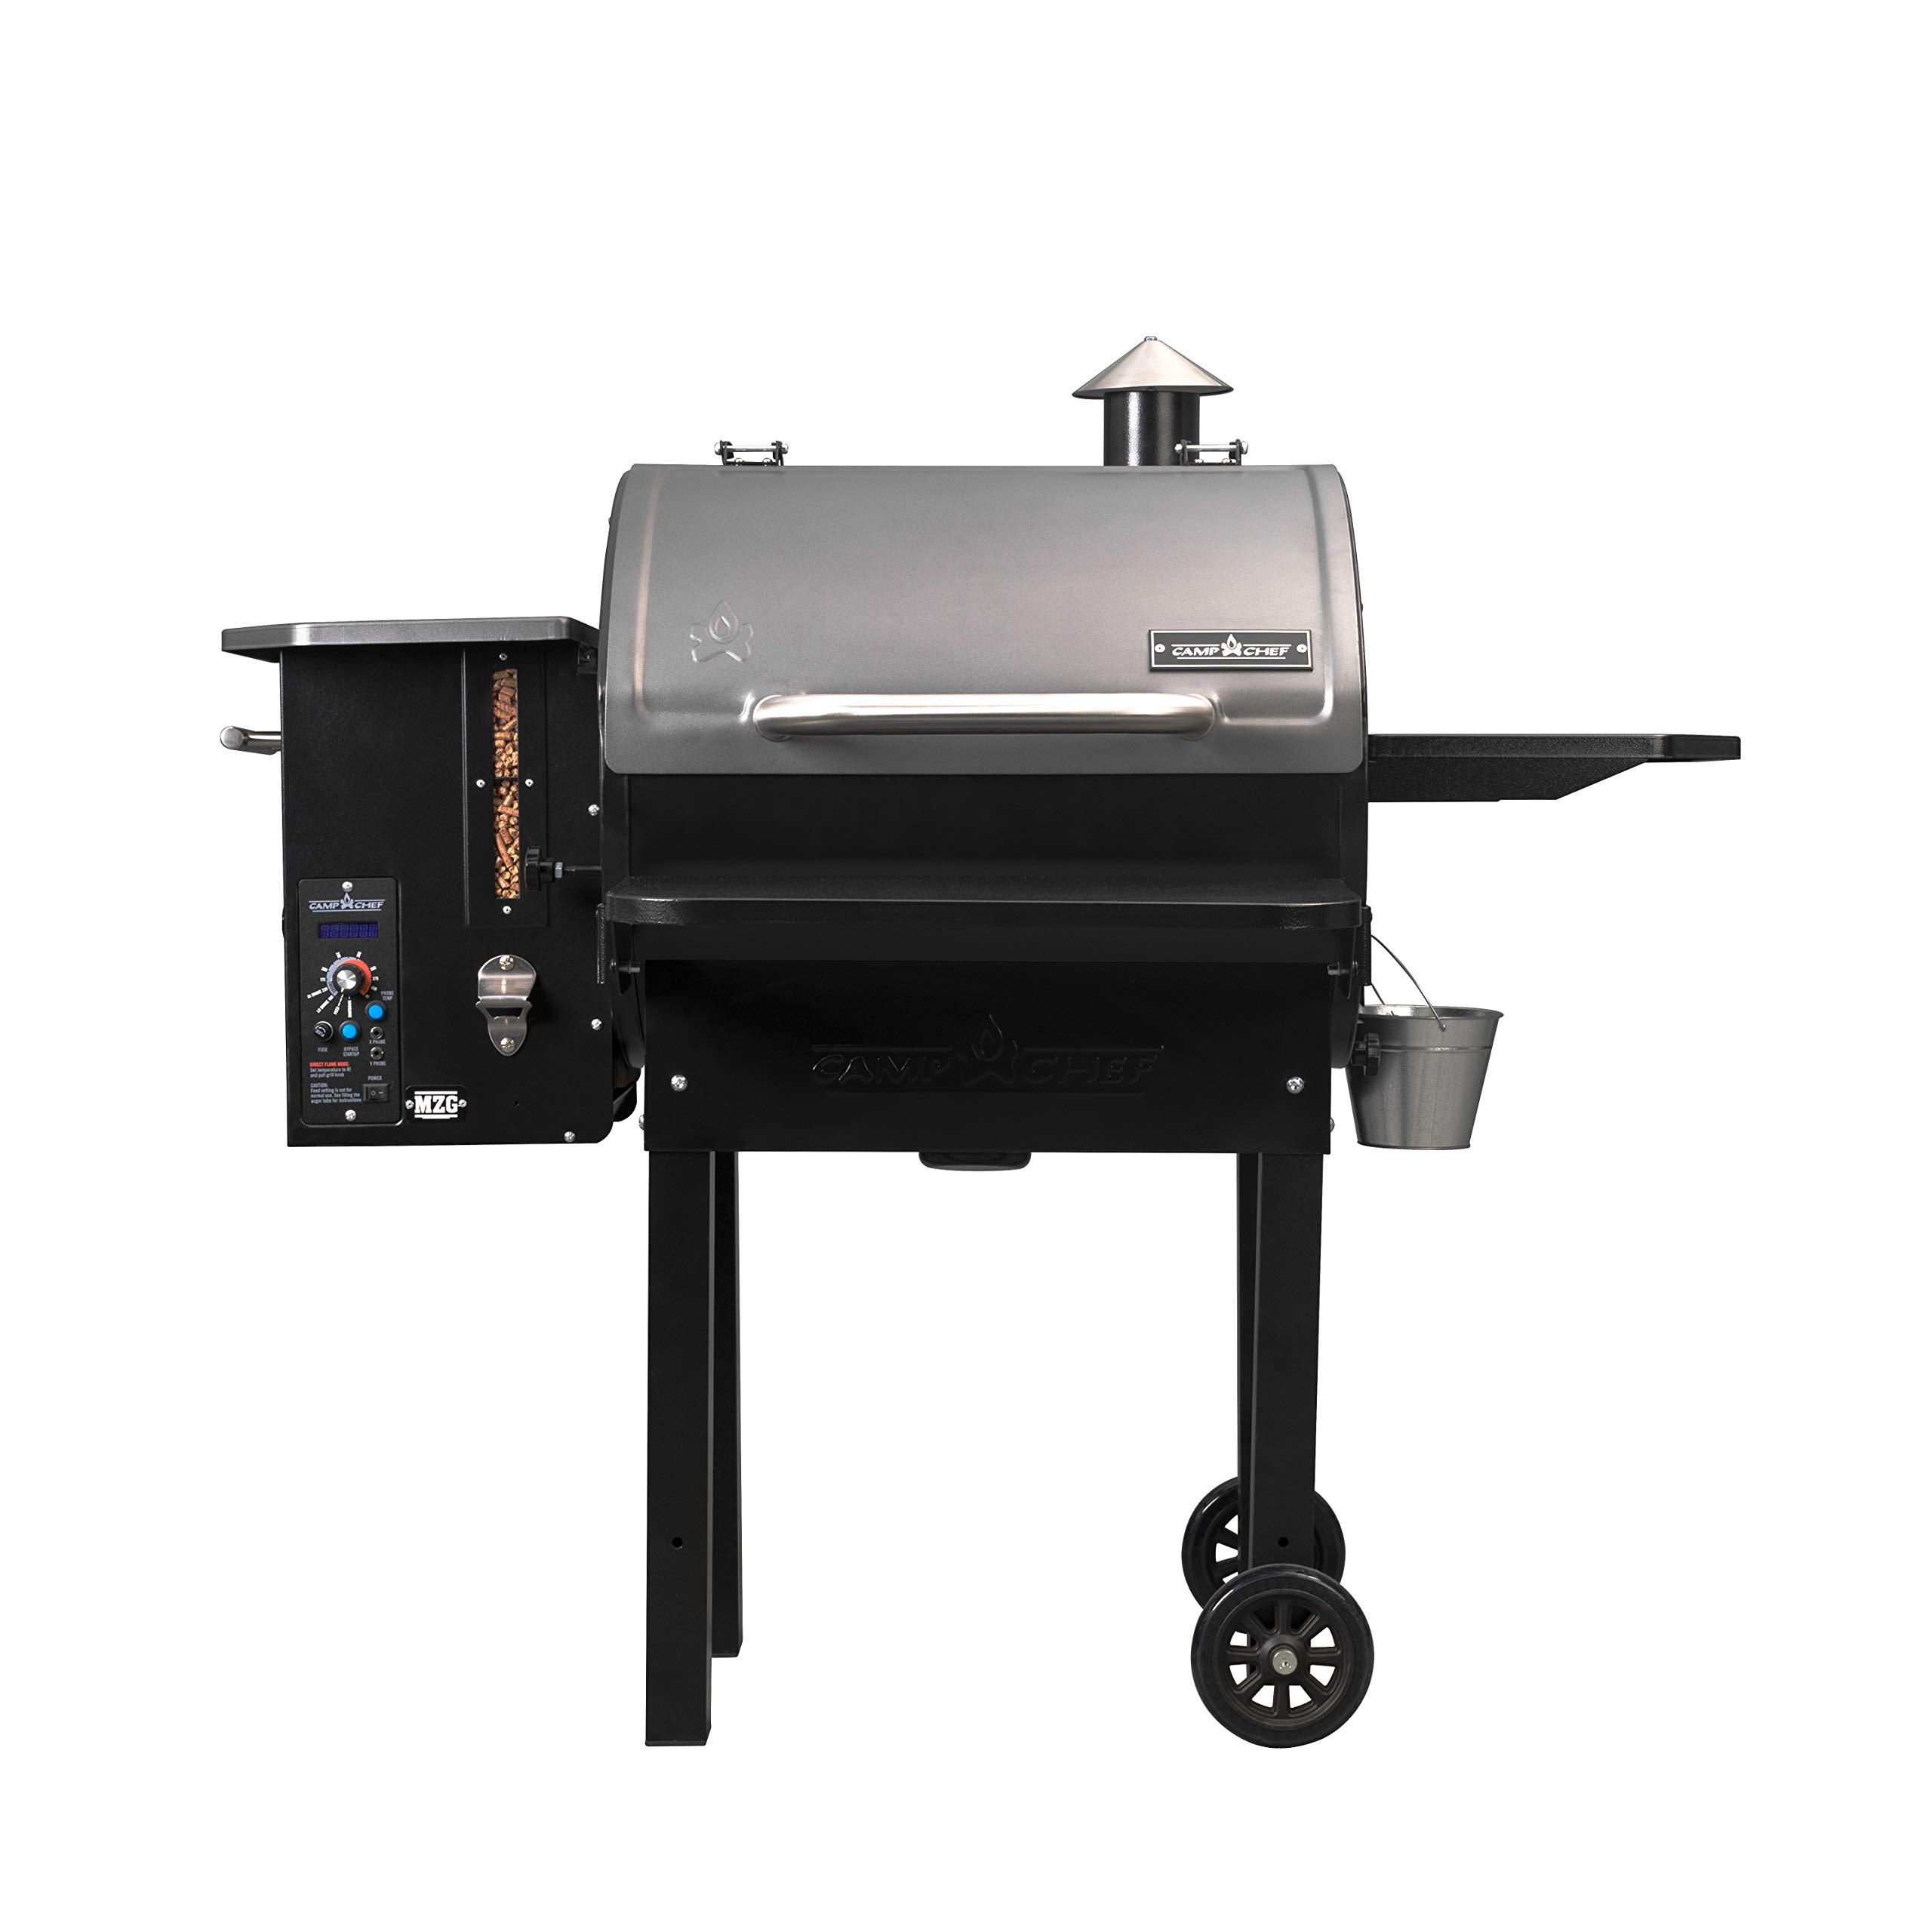 Camp Chef PG24MZG SmokePro Slide Smoker with Fold Down Front Shelf Wood Pellet Grill, Black by Camp Chef